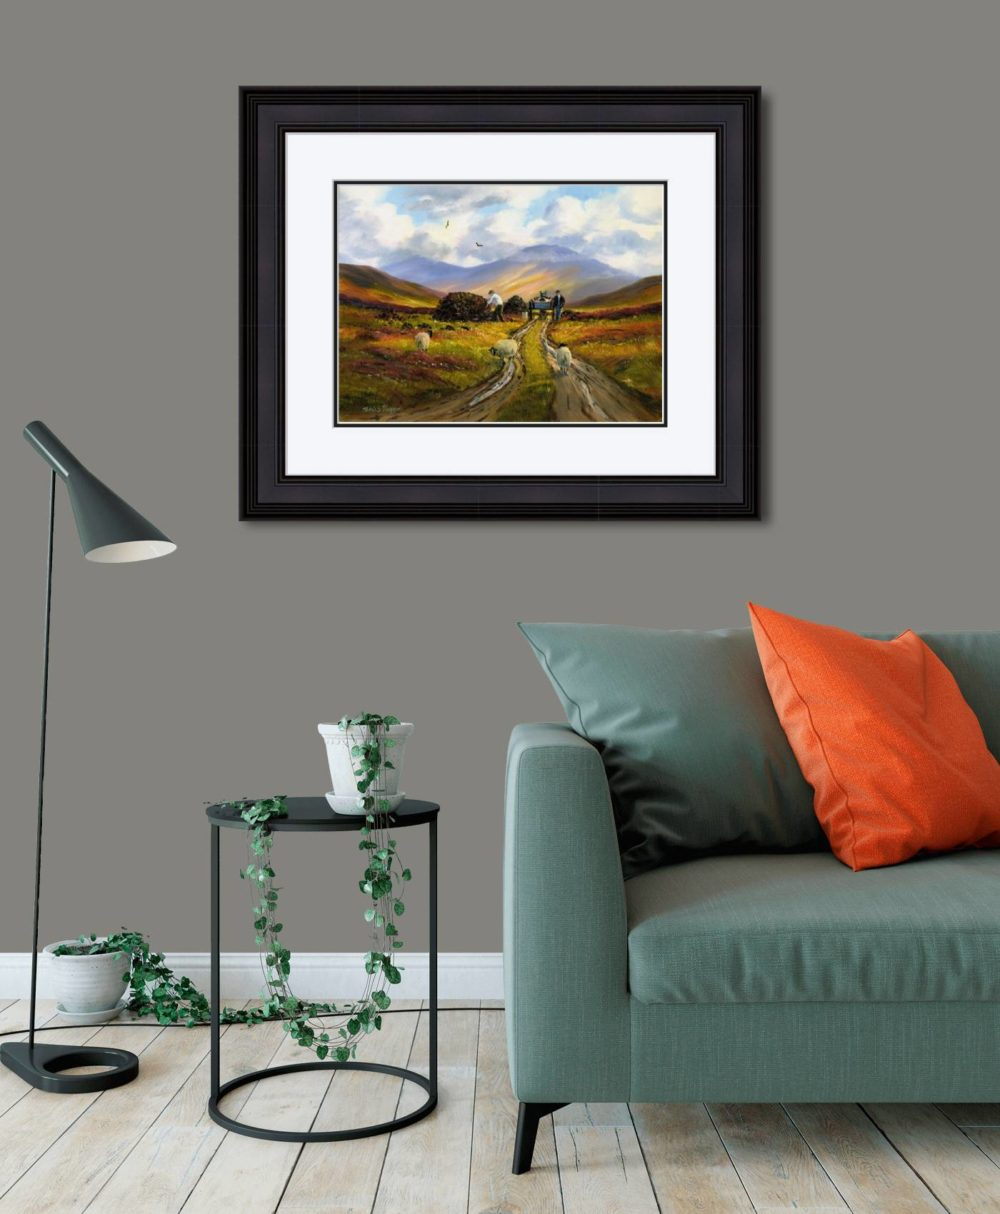 Collecting The Turf Print (Large) in Black Frame in Room